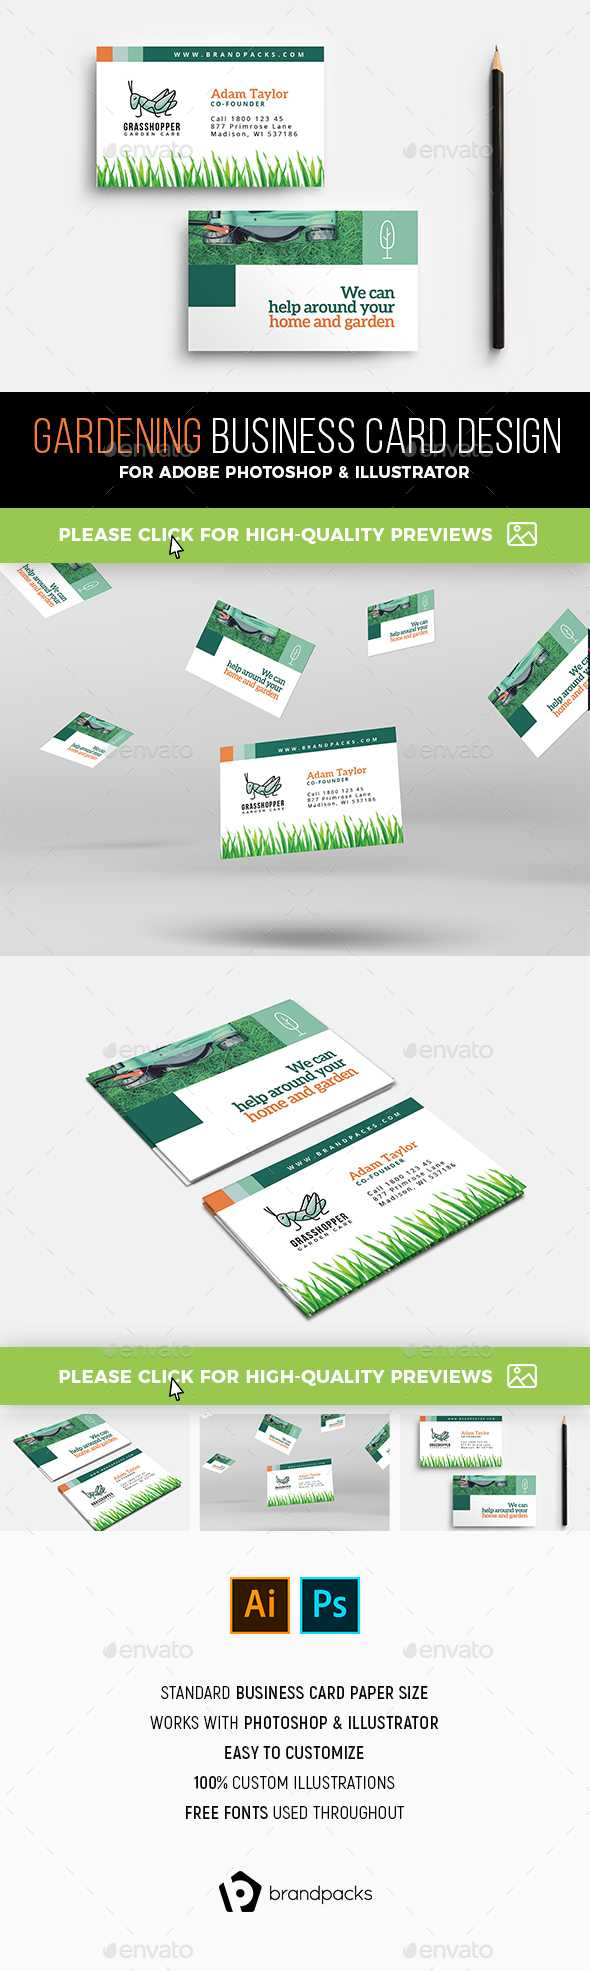 Gardening Business Card Templates & Designs From Graphicriver Within Gardening Business Cards Templates